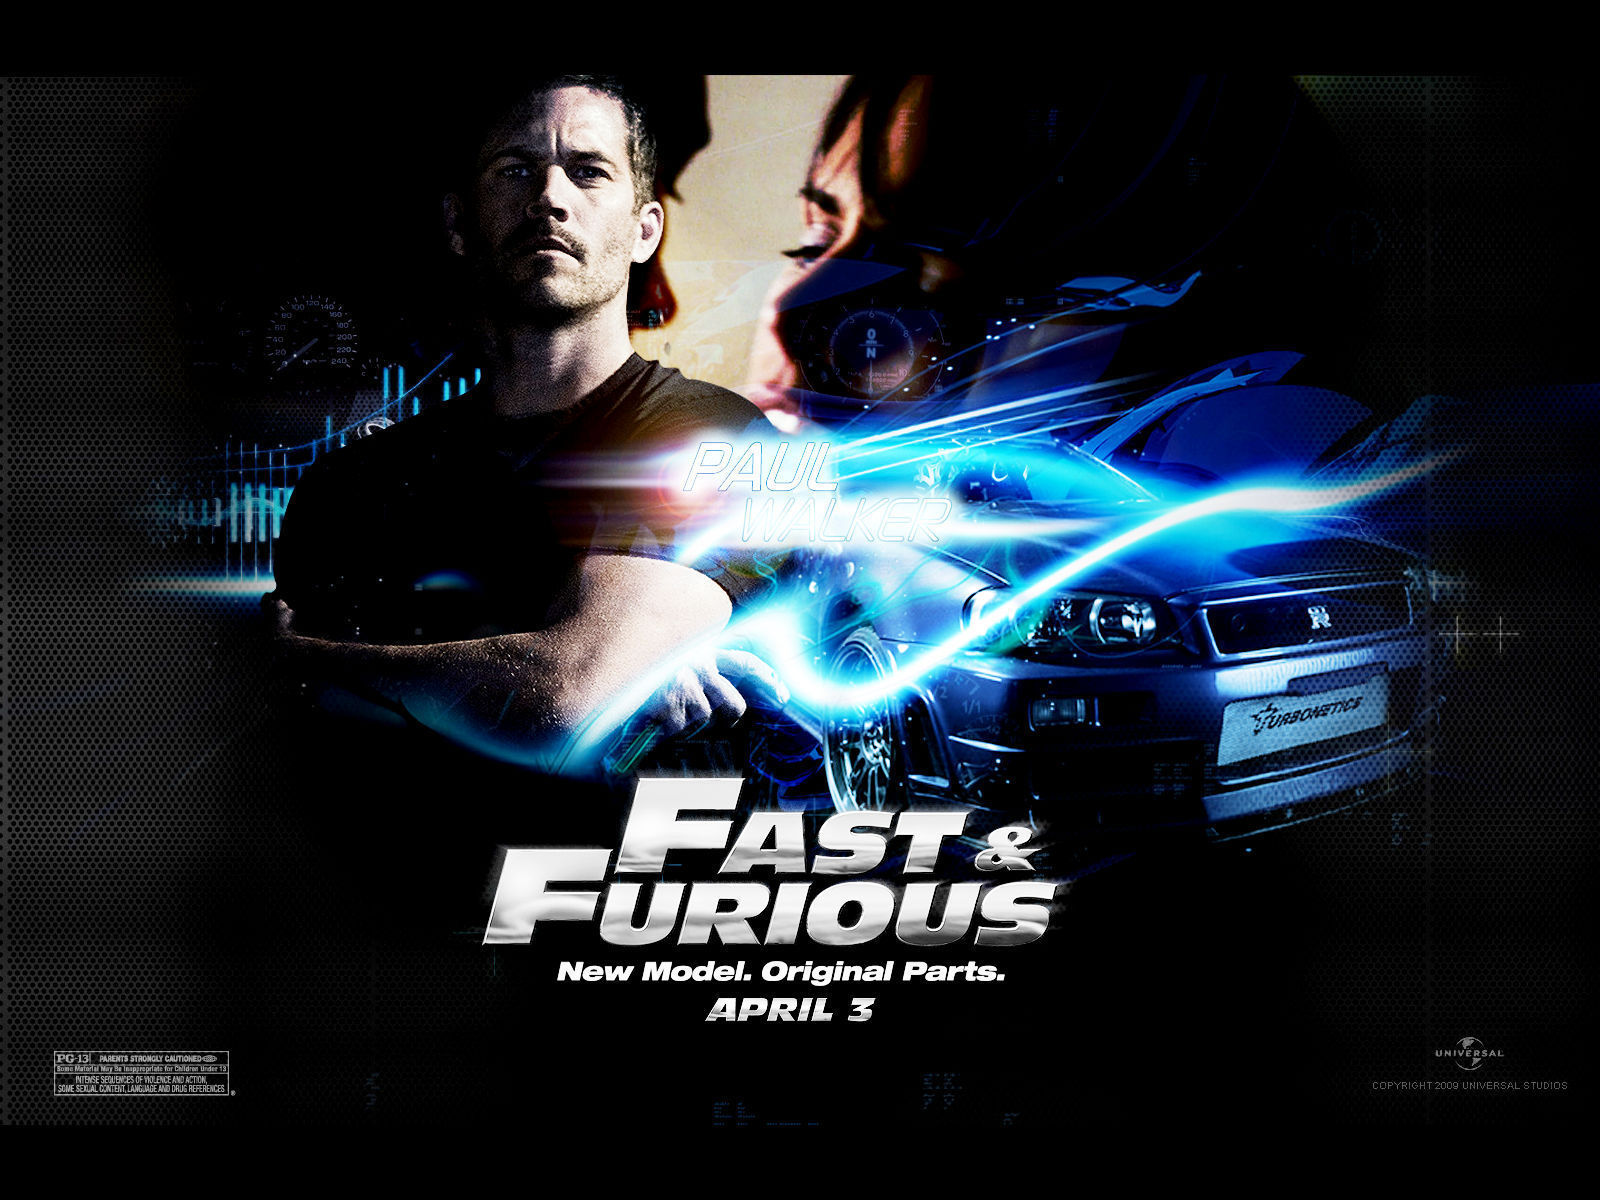 Fast & Furious - Upcoming Movies Wallpaper (5012516) - Fanpop